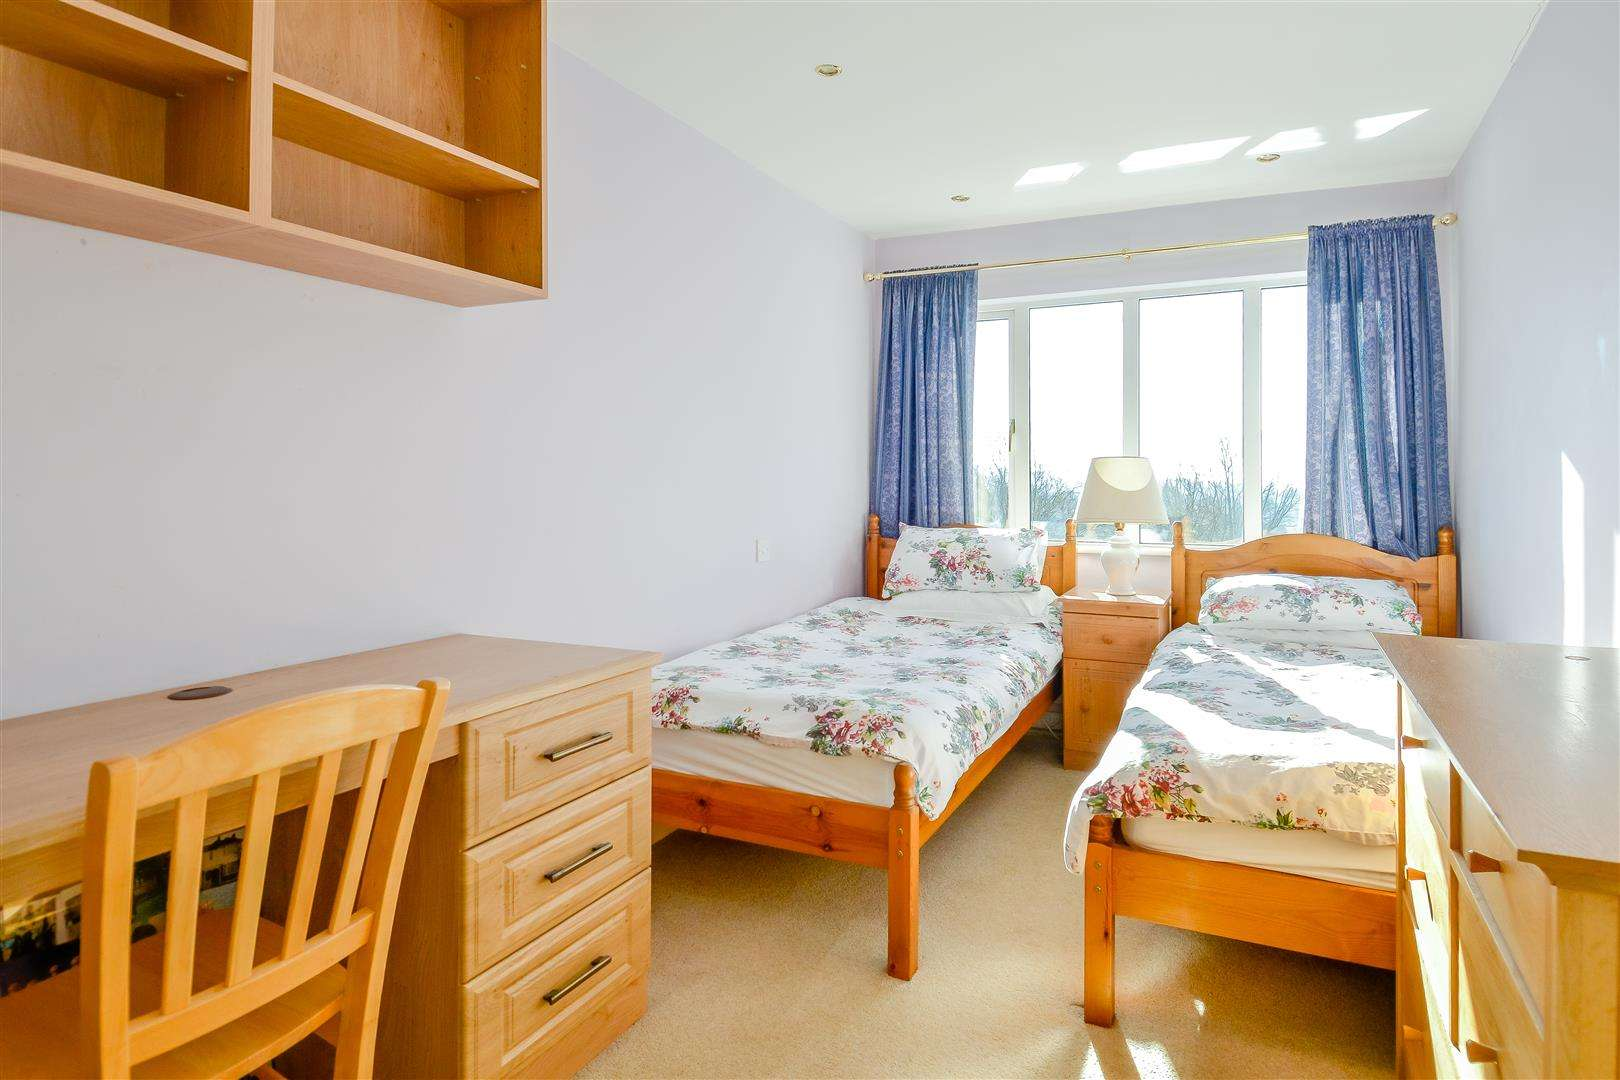 4 bed for sale in Merry Hill Road, Bushey - (Property Image 9)